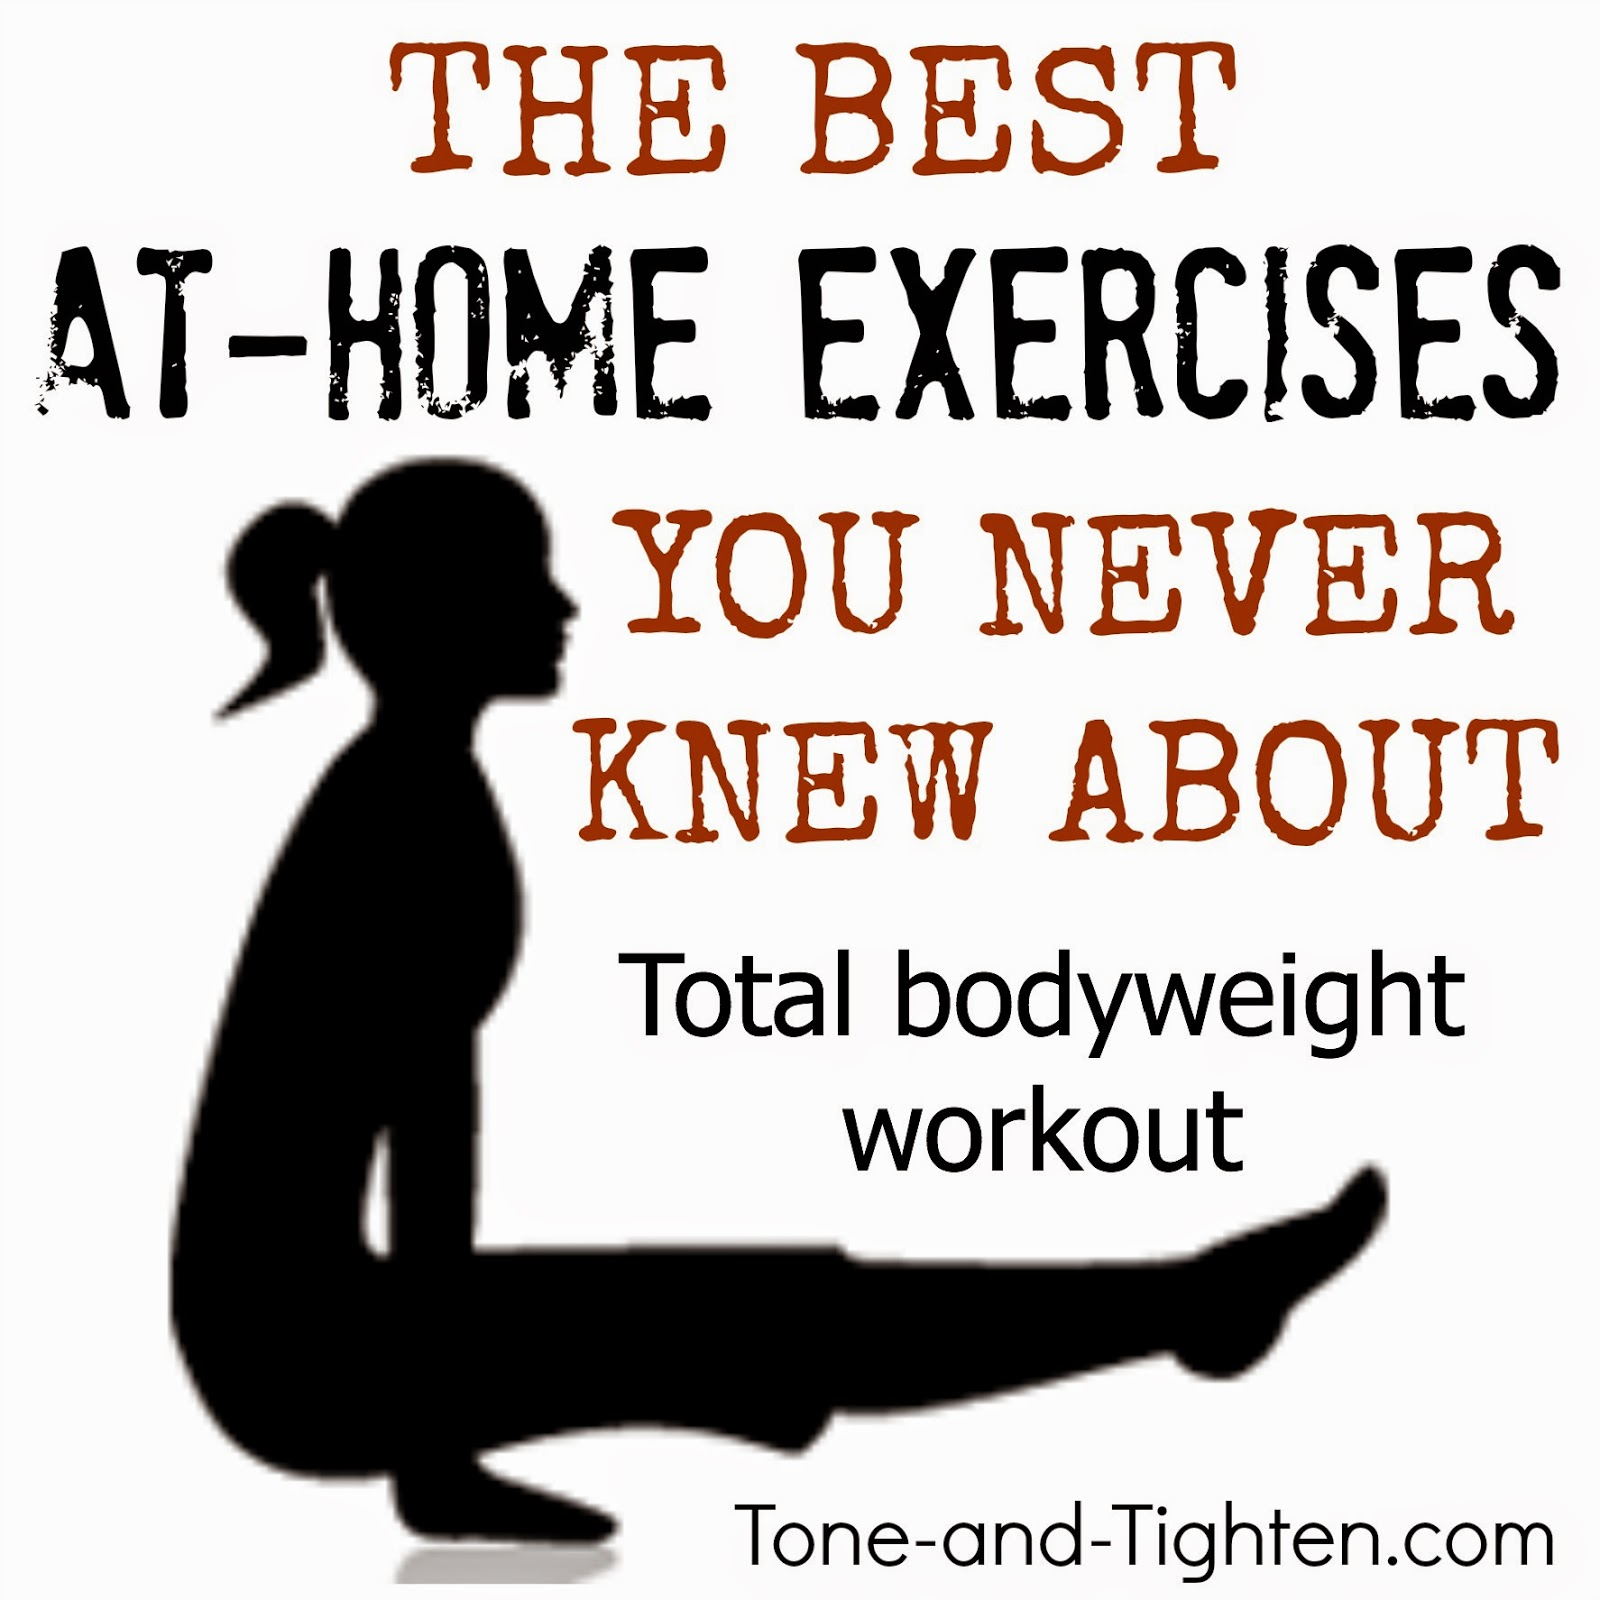 https://tone-and-tighten.com/2014/01/the-best-at-home-exercises-you-never-knew-about.html